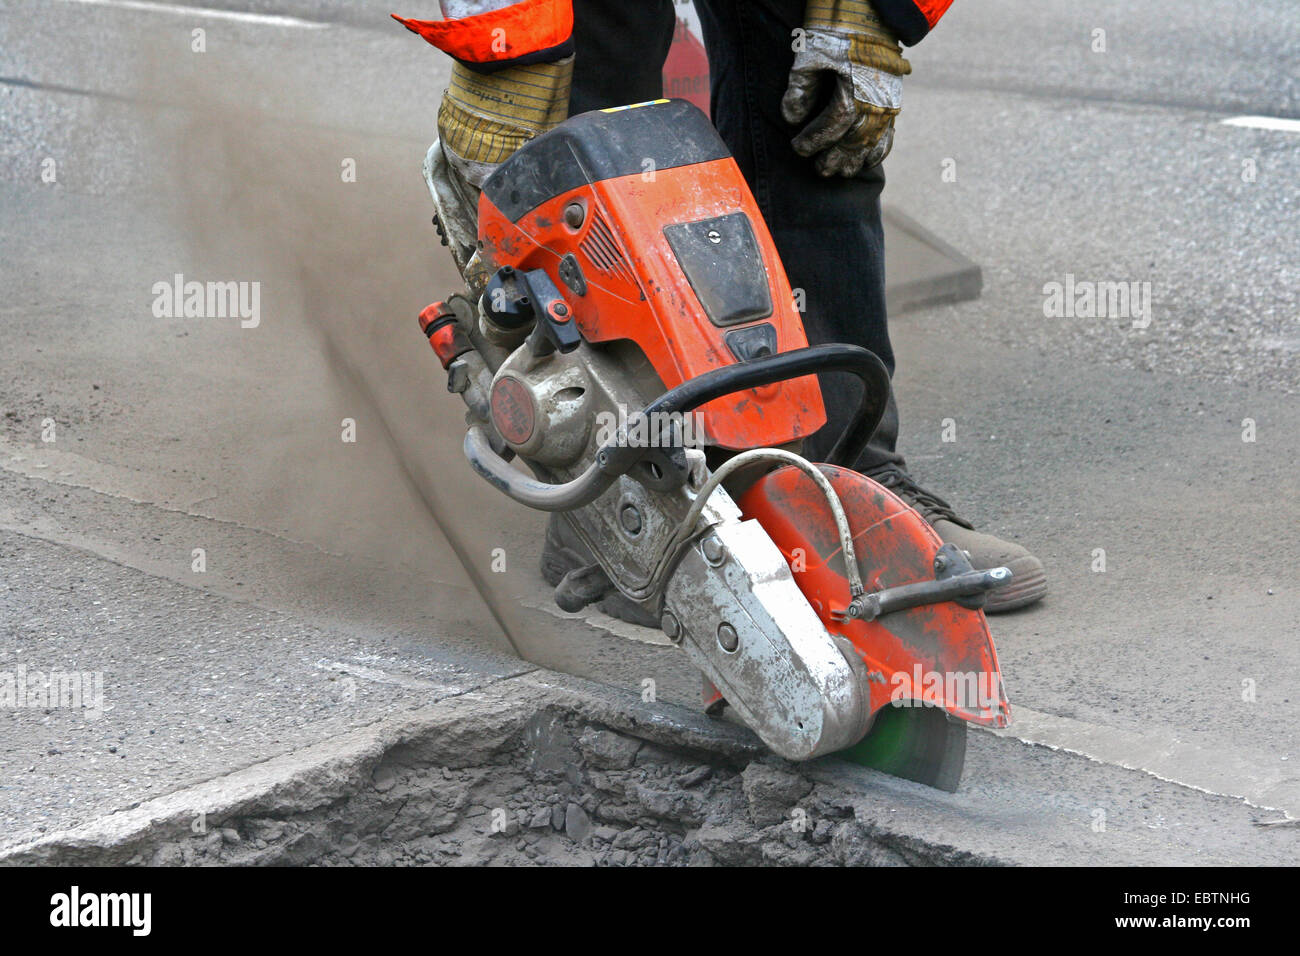 cutting the old road surface with angle grinder, Germany, North Rhine-Westphalia - Stock Image